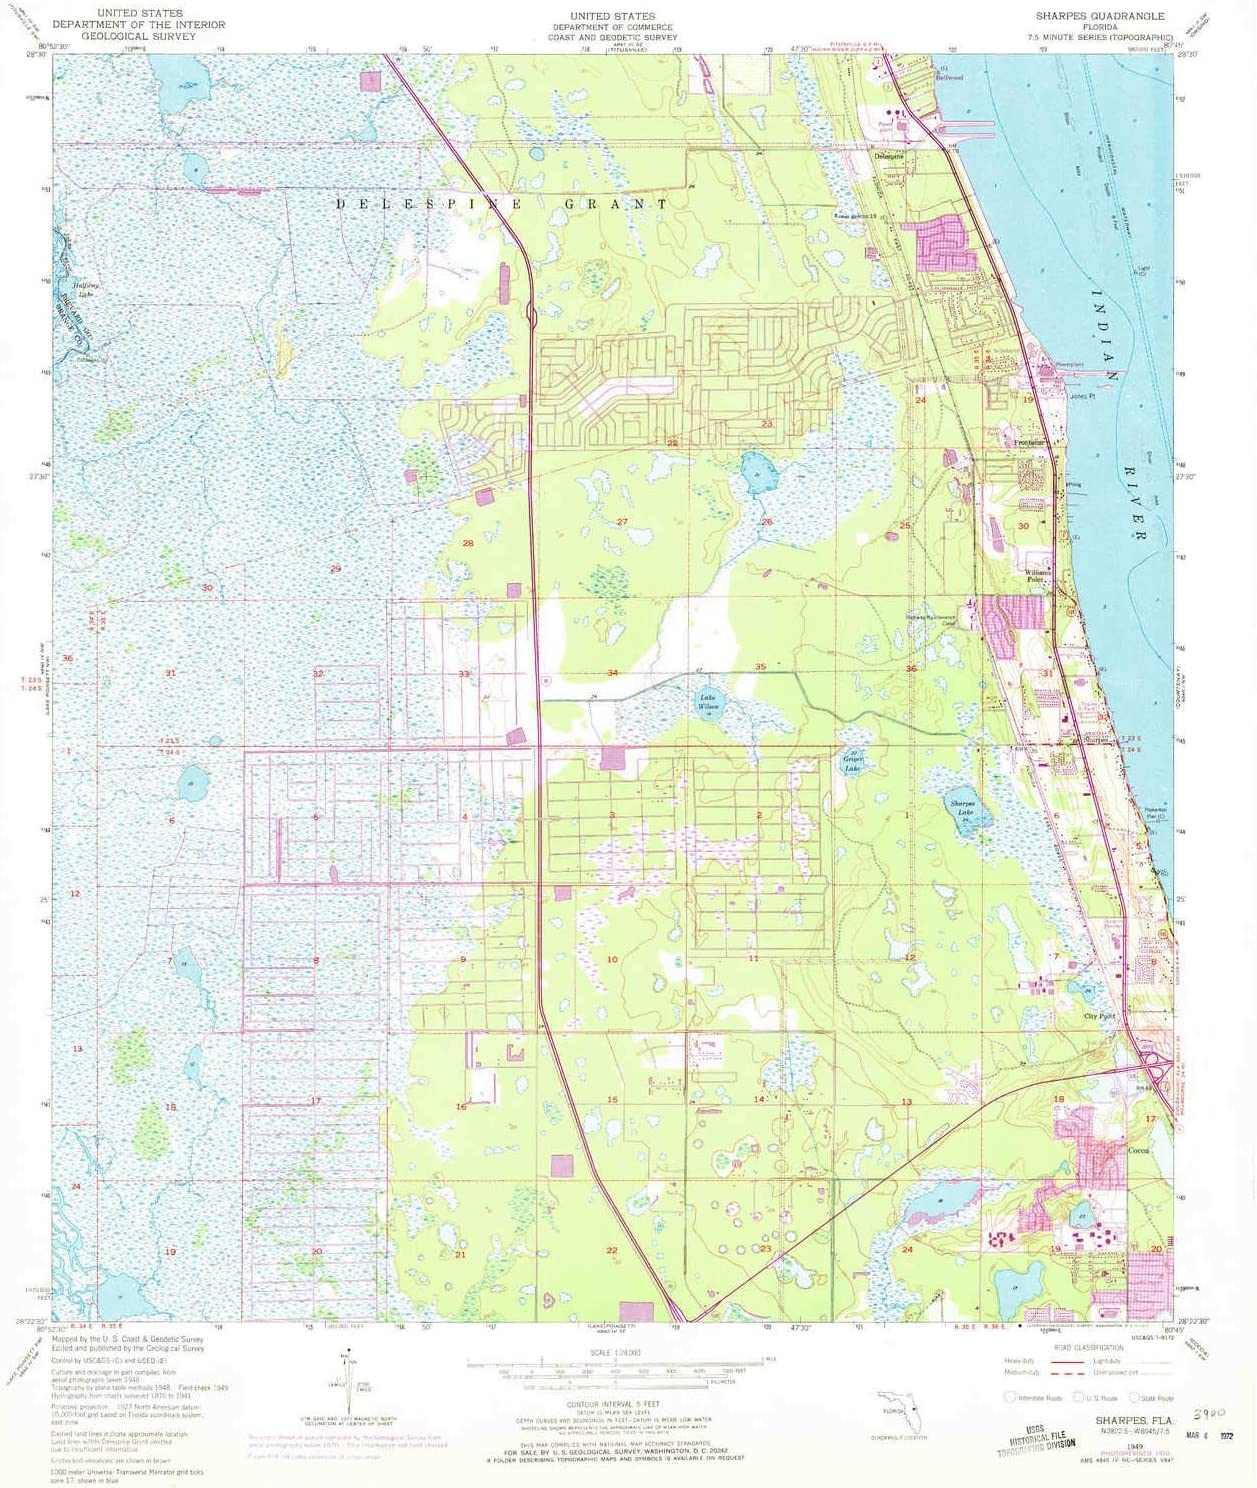 26.8 x 23 in Updated 1984 1:24000 Scale 1966 7.5 X 7.5 Minute Historical YellowMaps Eustis FL topo map